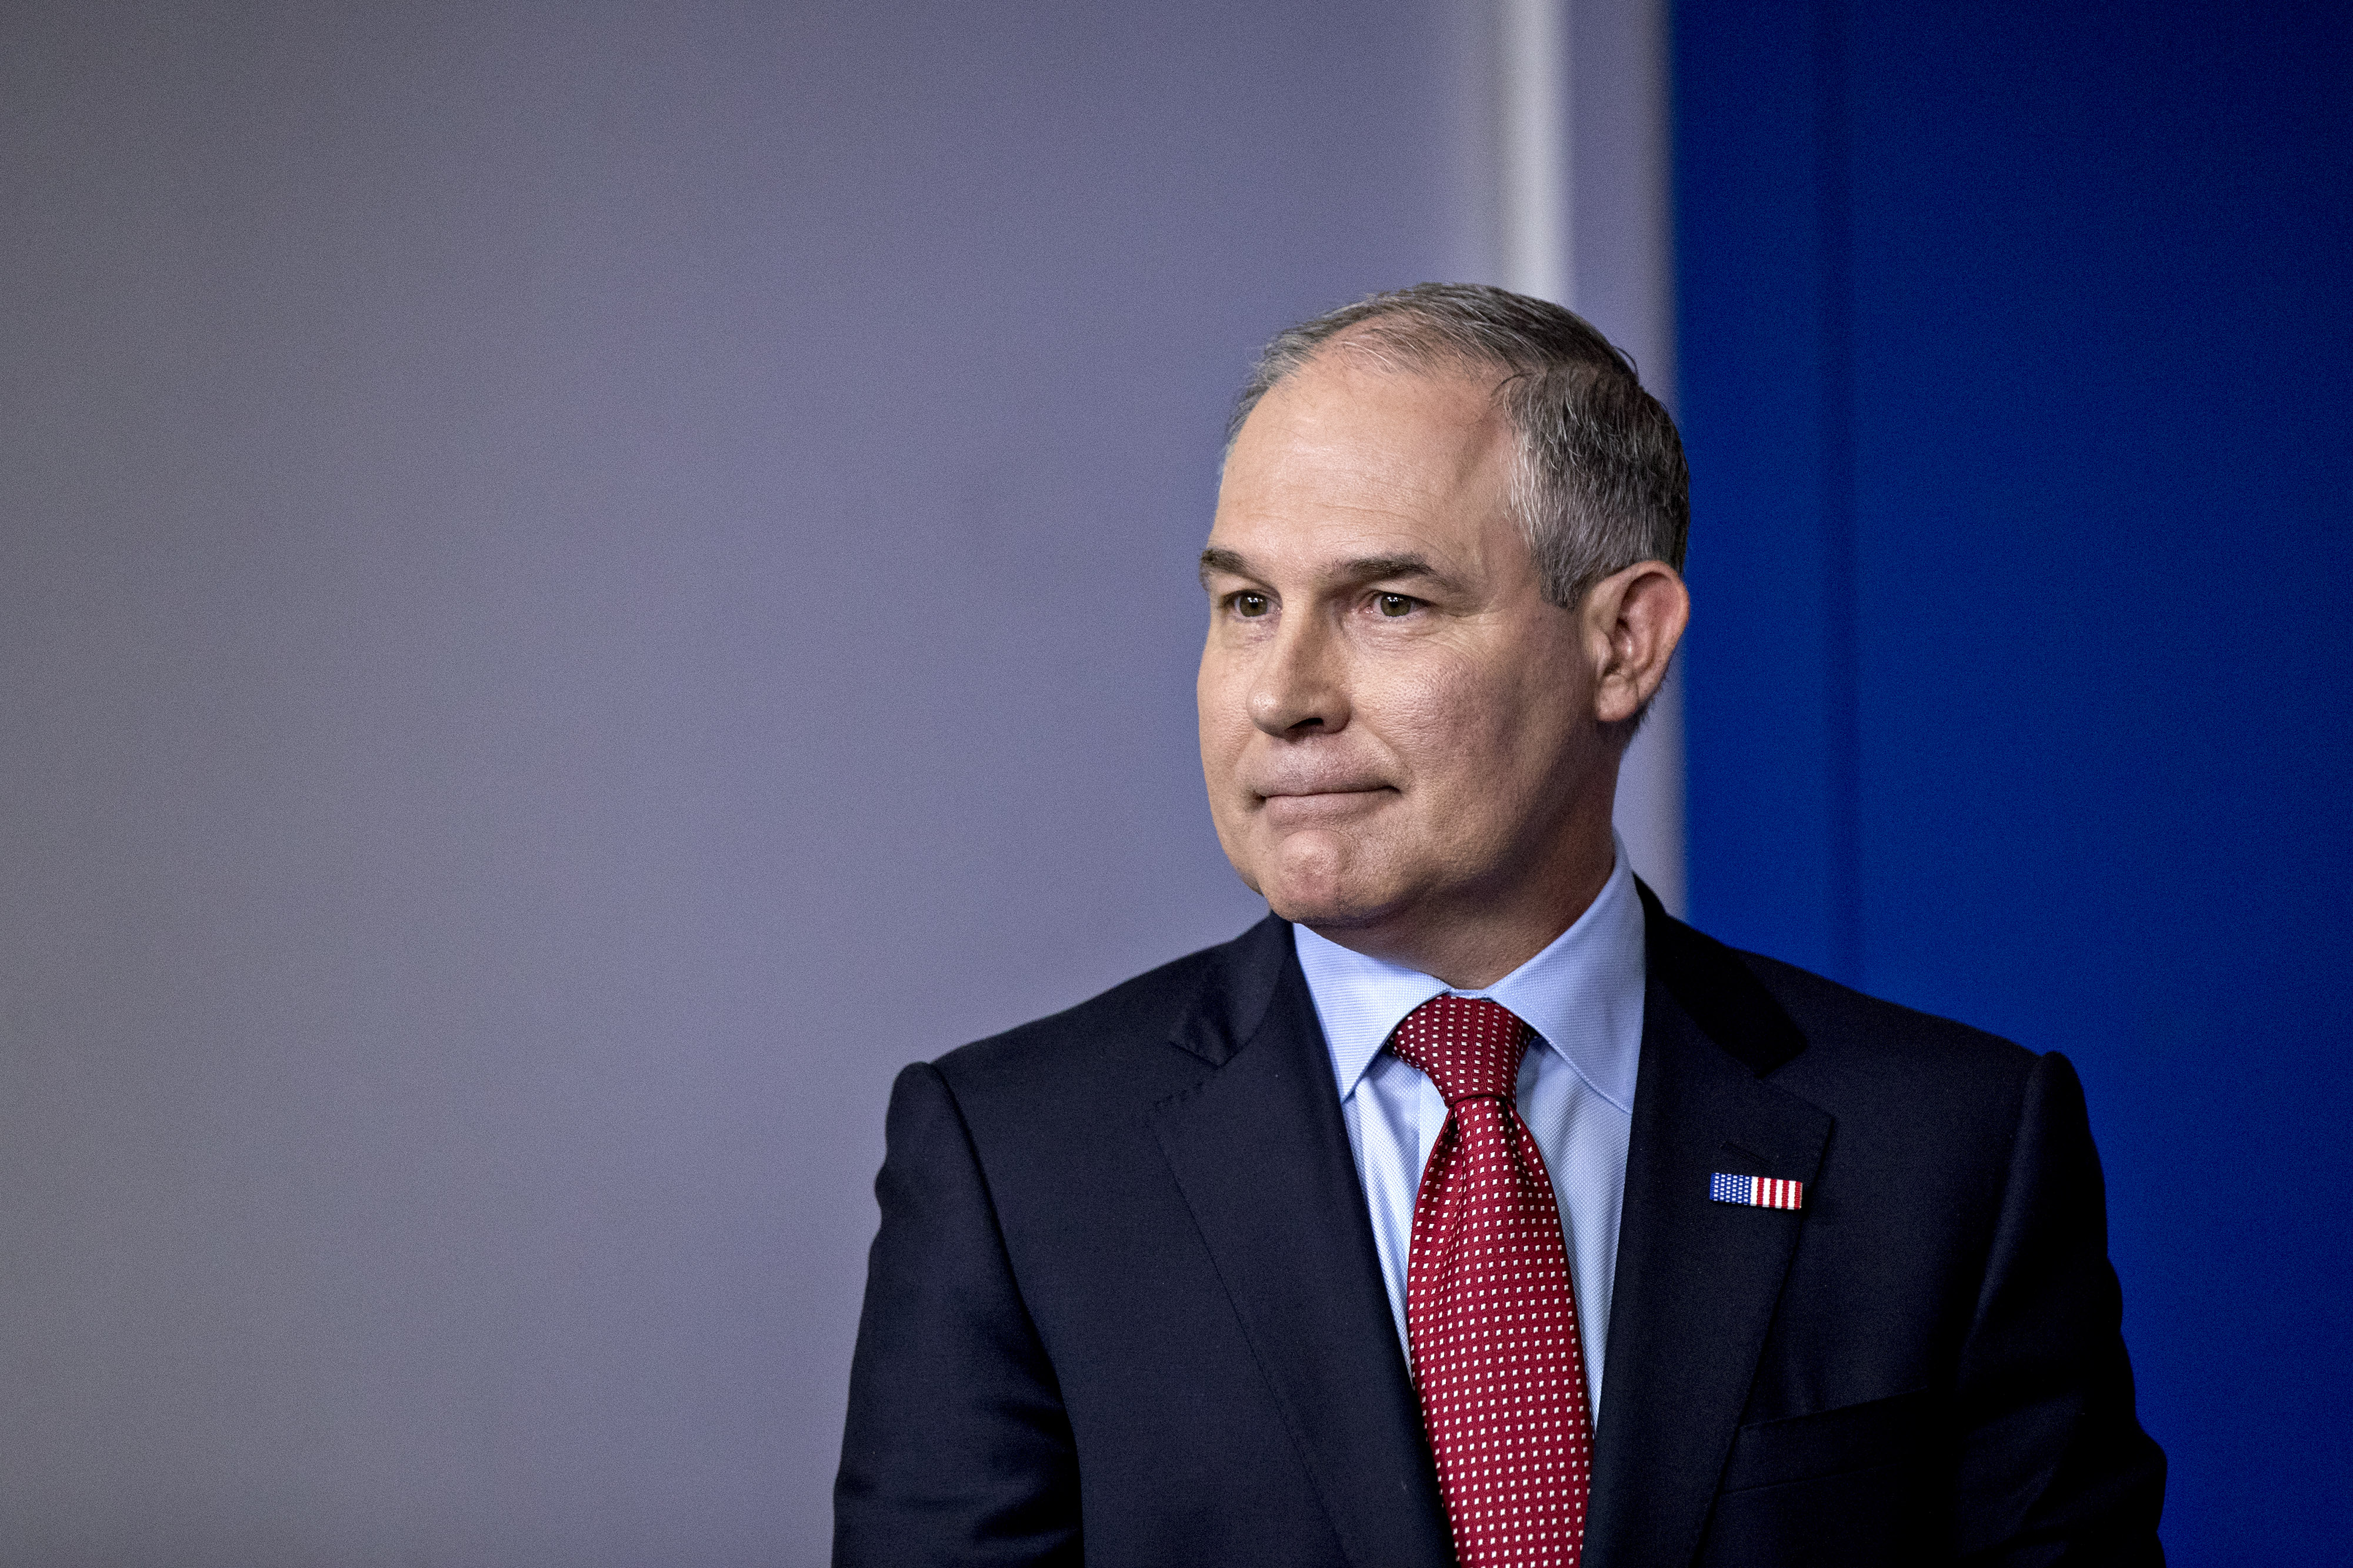 Scott Pruitt, administrator of the Environmental Protection Agency (EPA), waits to speak during a White House press briefing in Washington, D.C. on June 2, 2017.